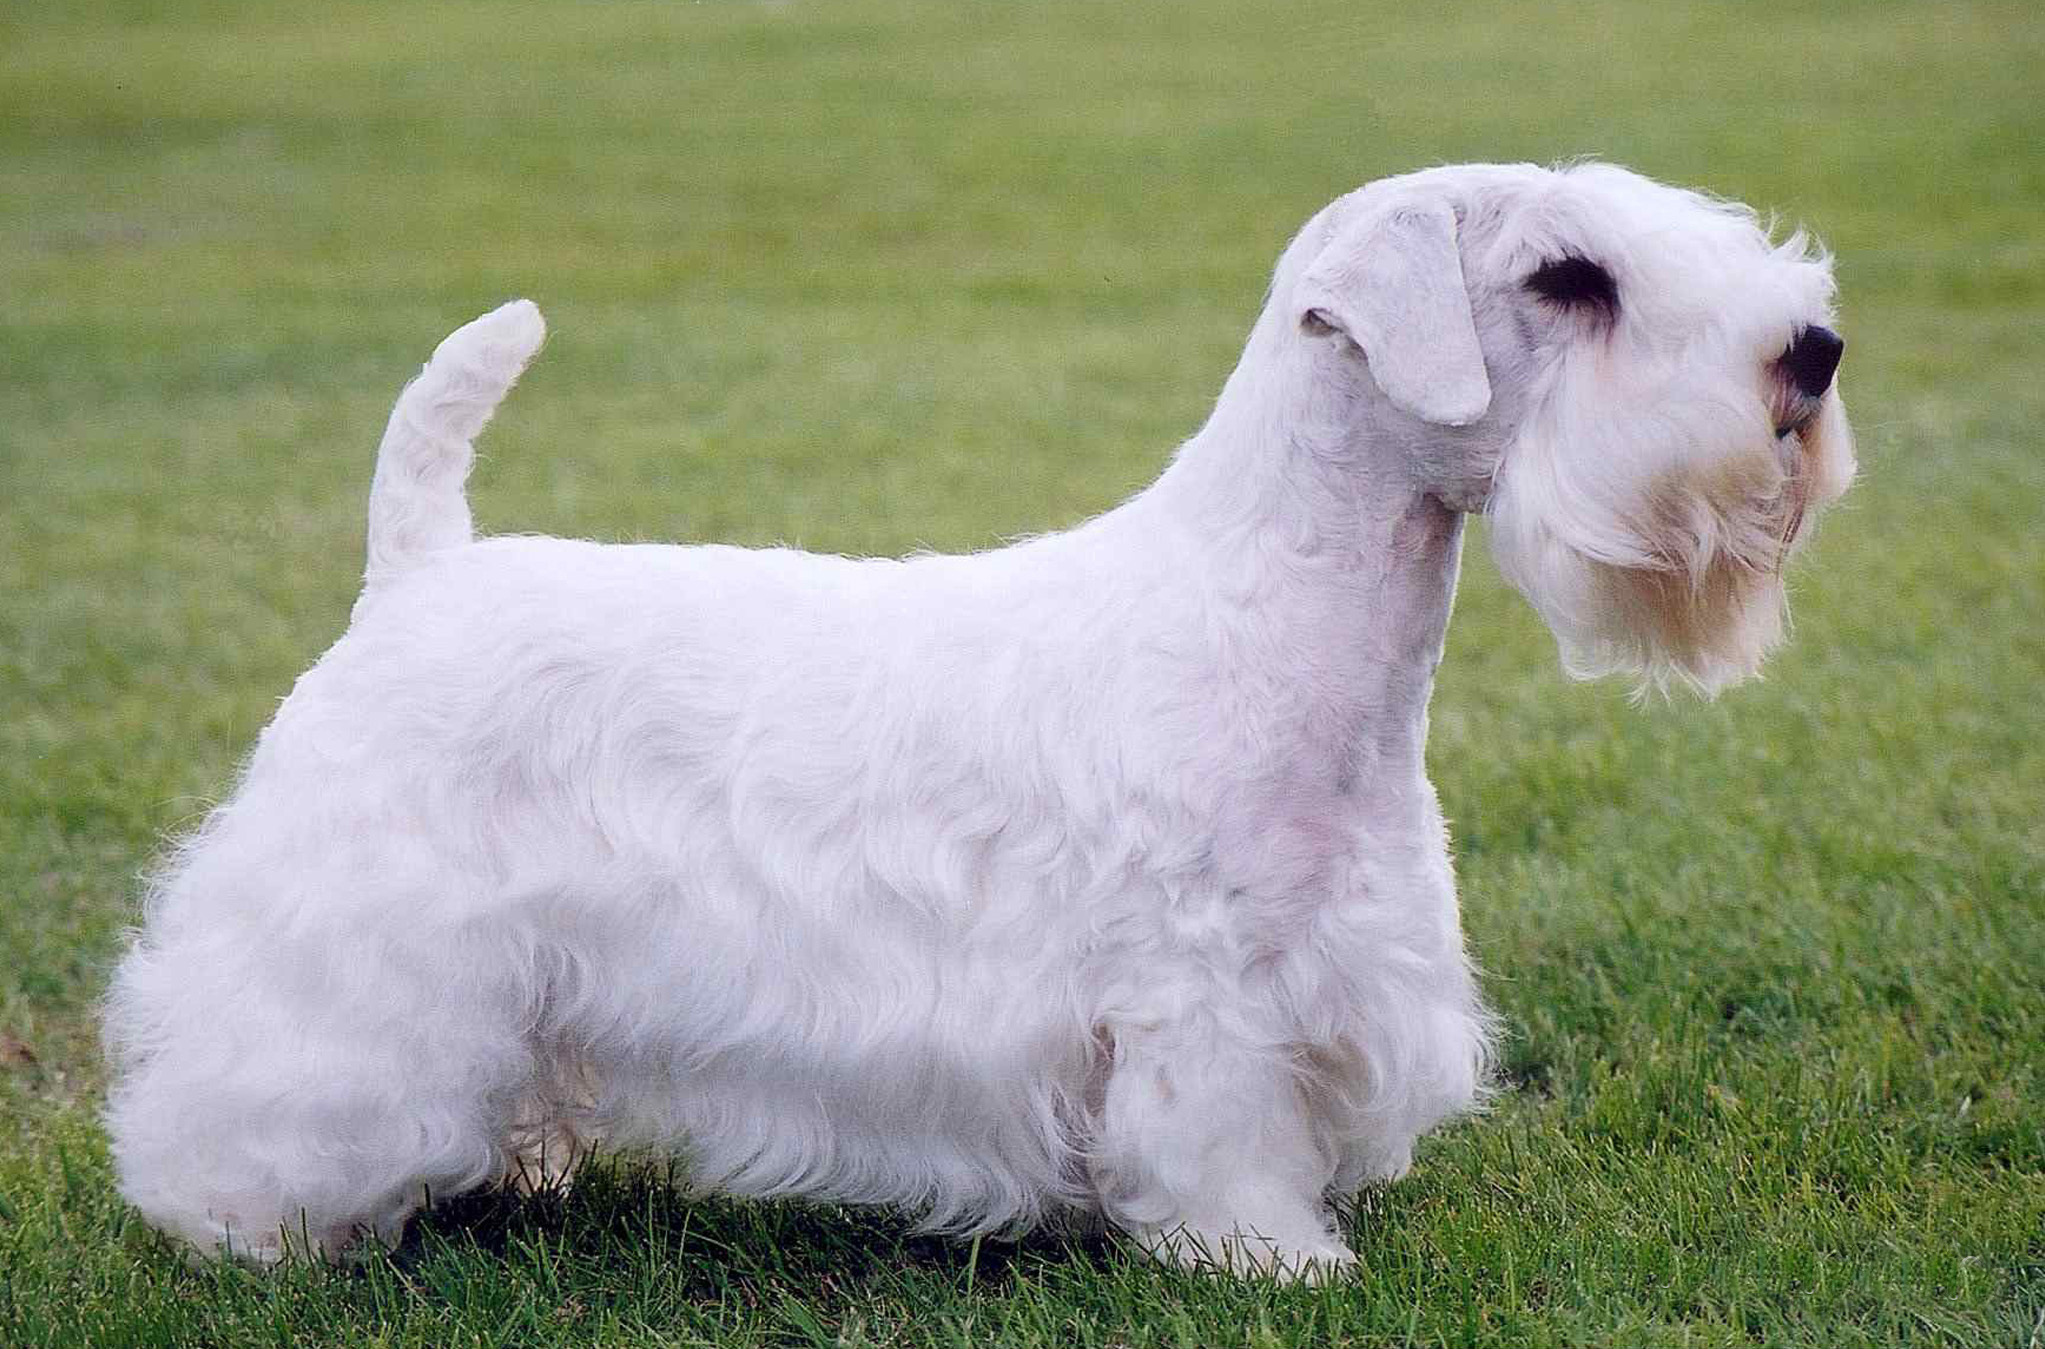 Sealyham Terrier: origins, physical characteristics and personality